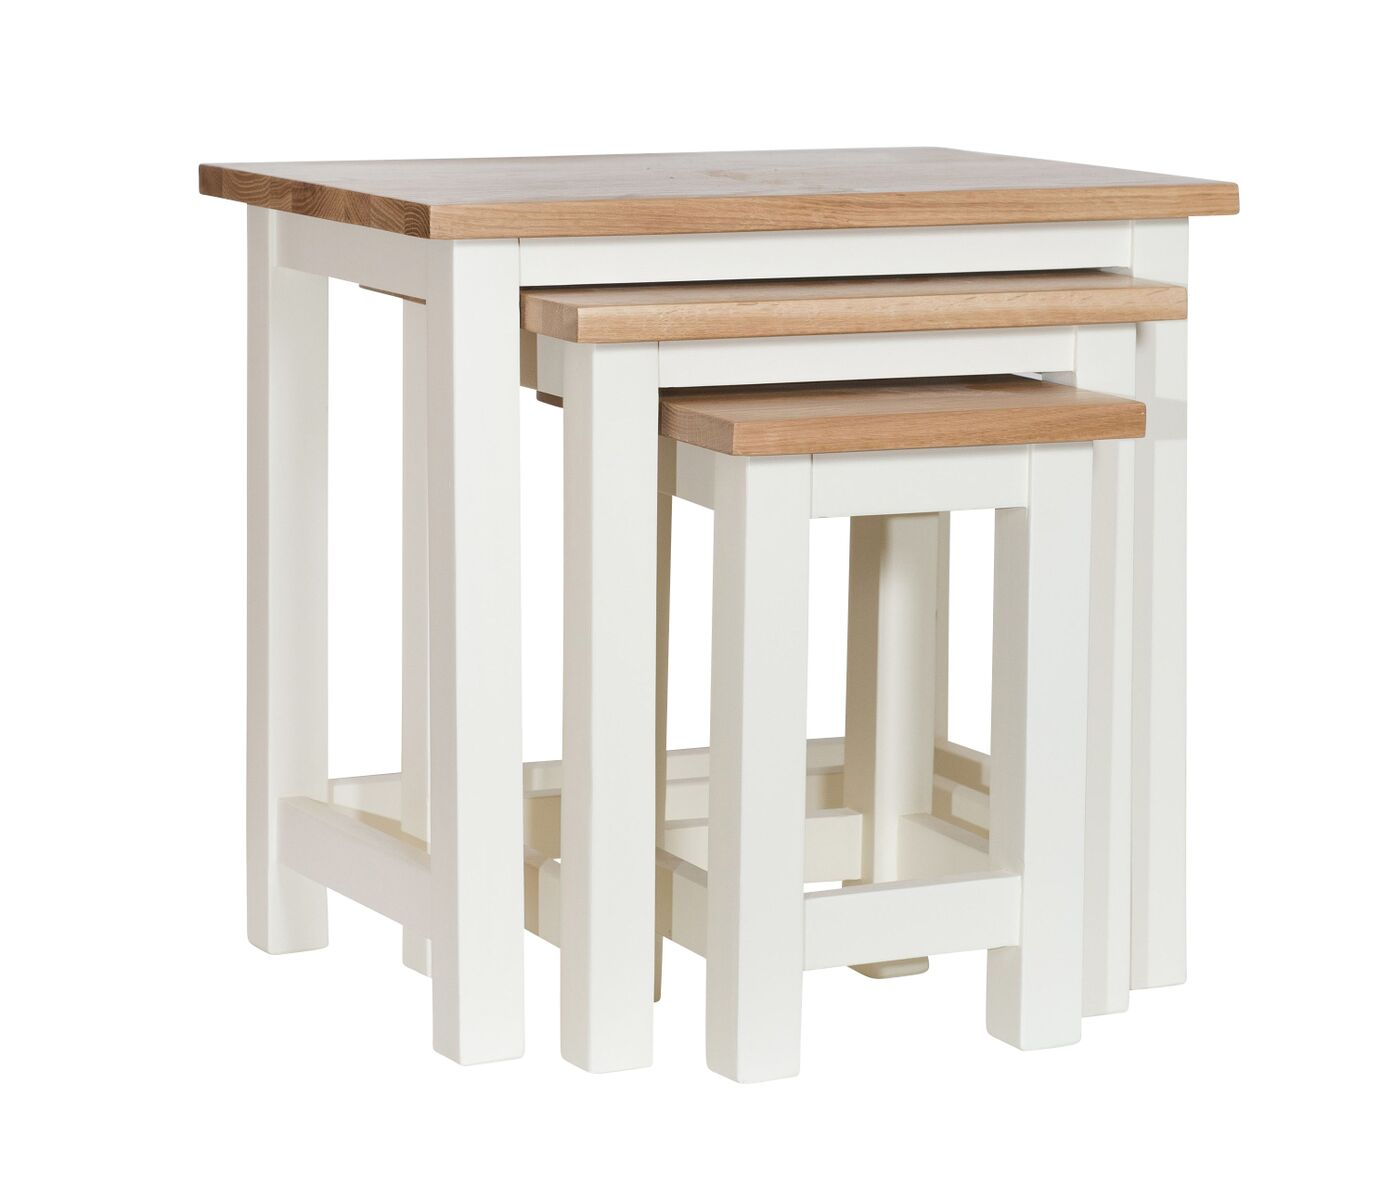 Simply Oak in Cream Nest of Tables